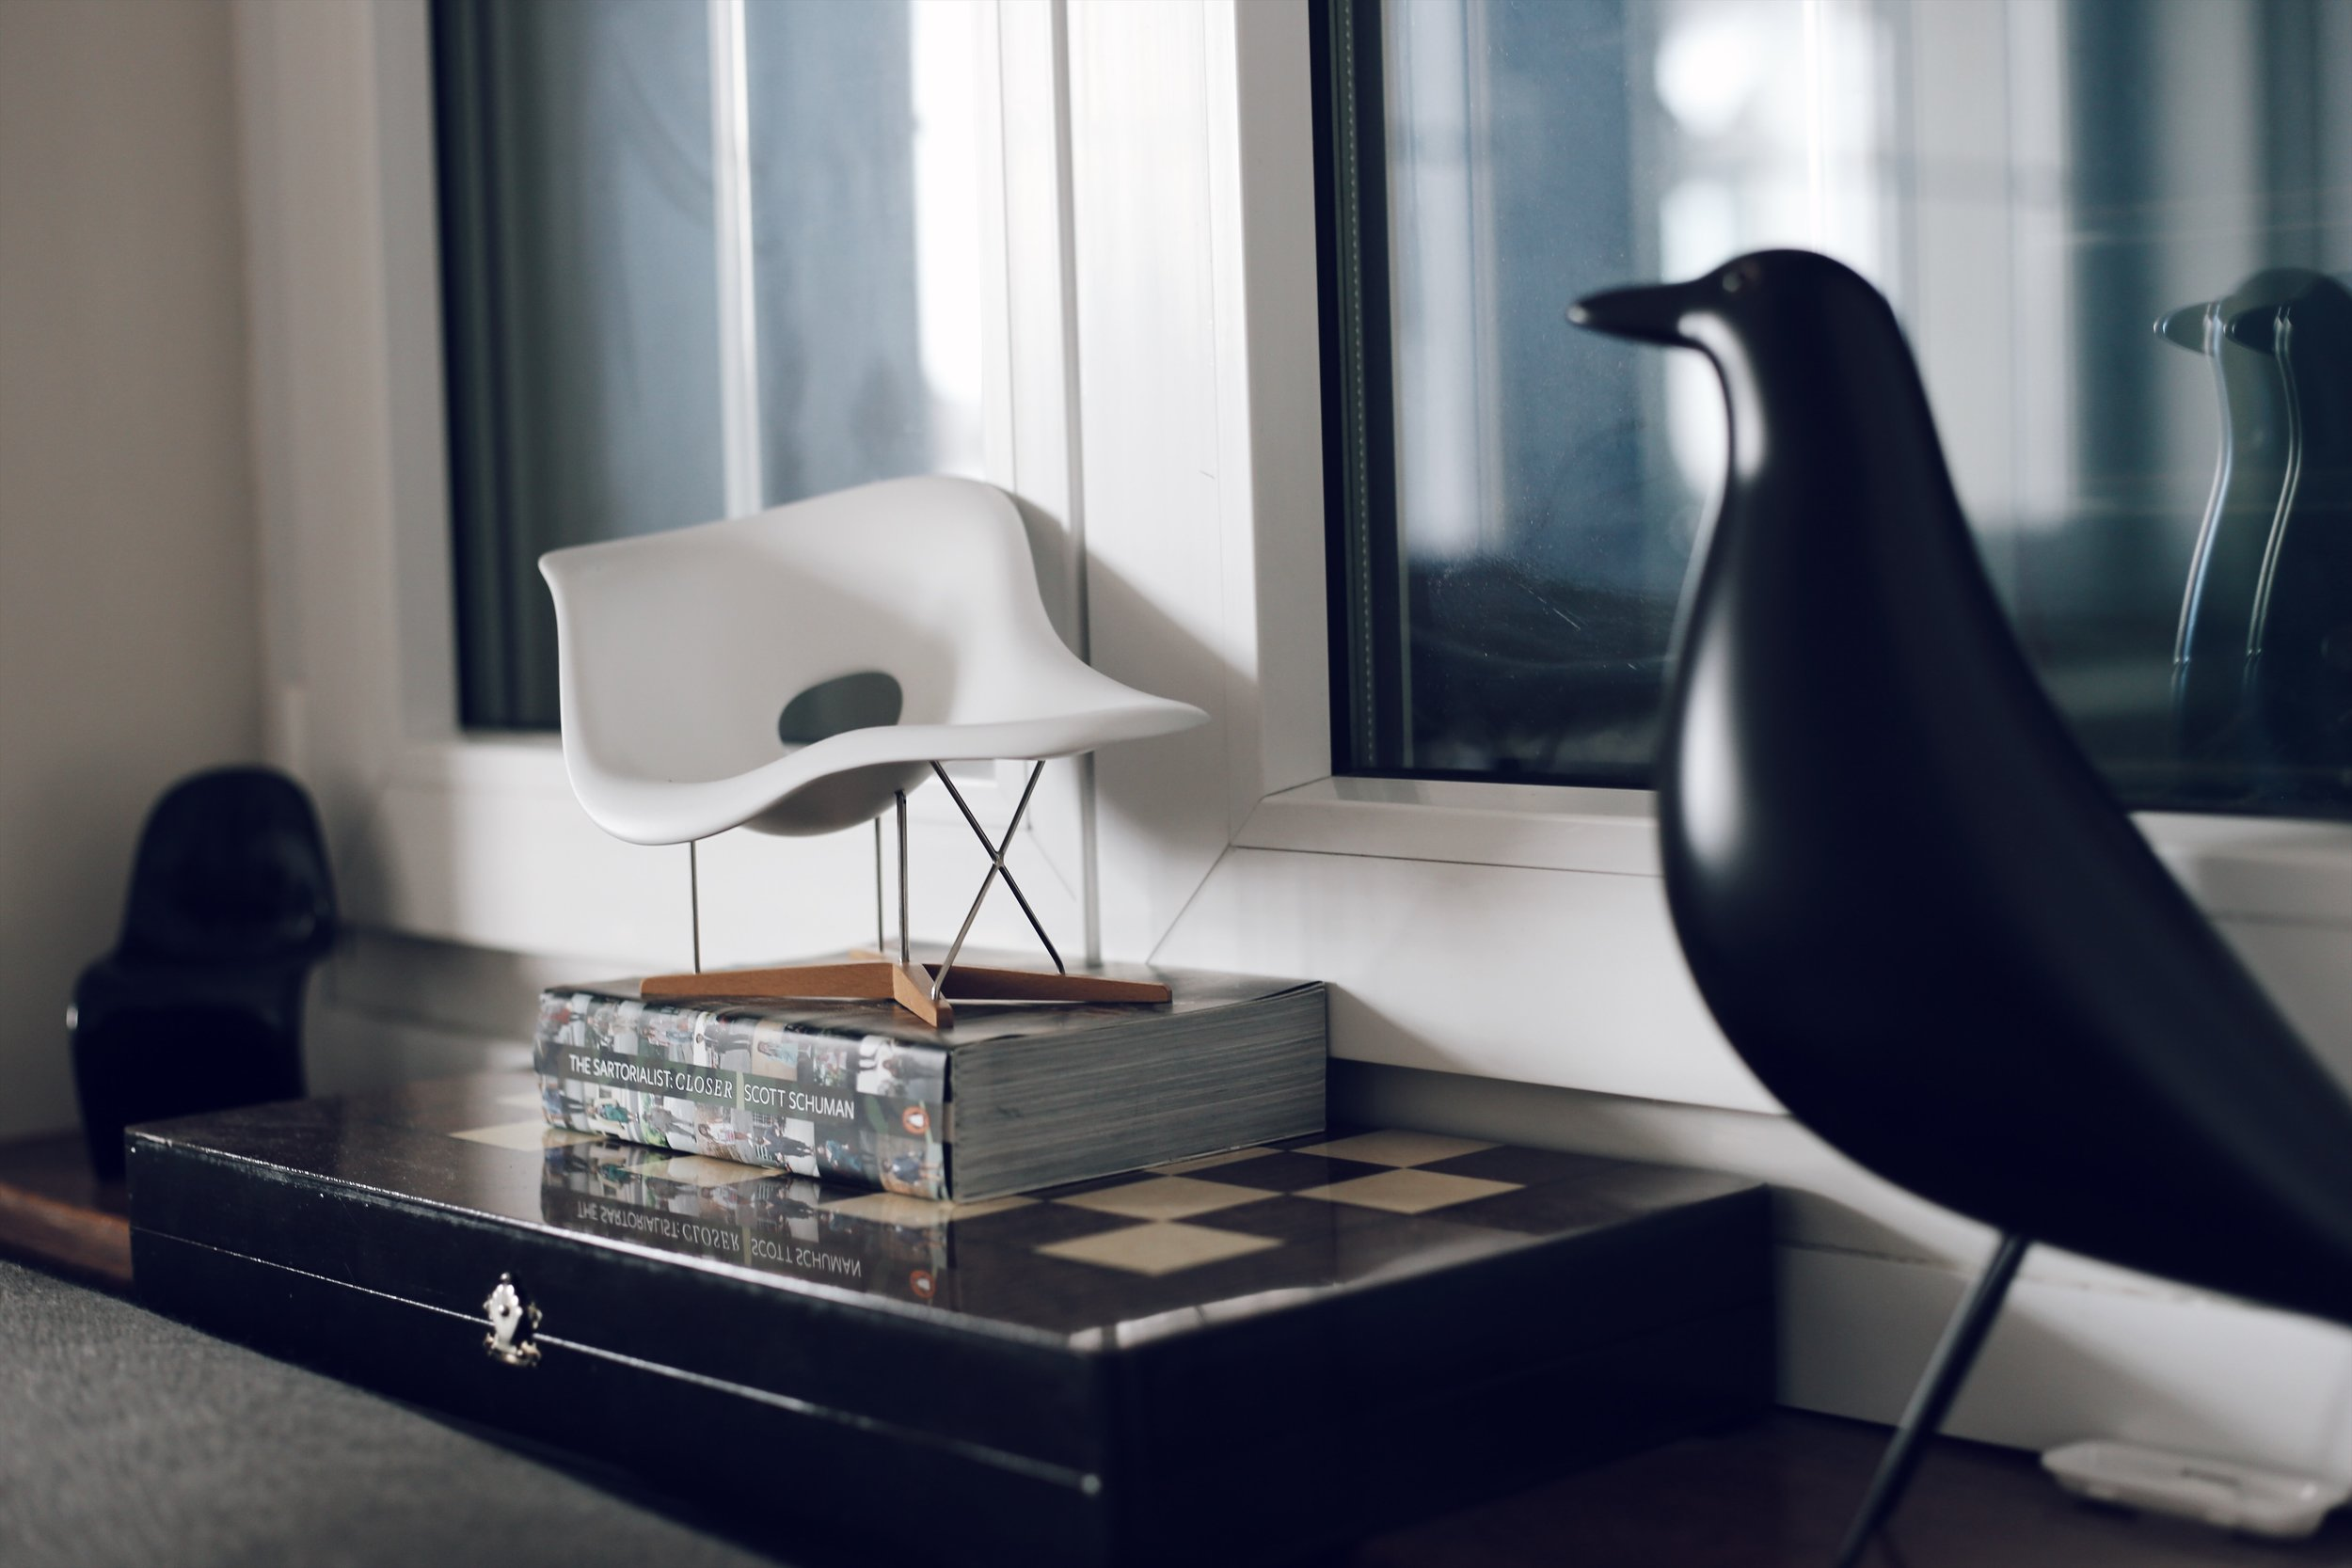 Some details in our living room (Panton Chair &La Chaise Miniatures & the Eames House Bird).